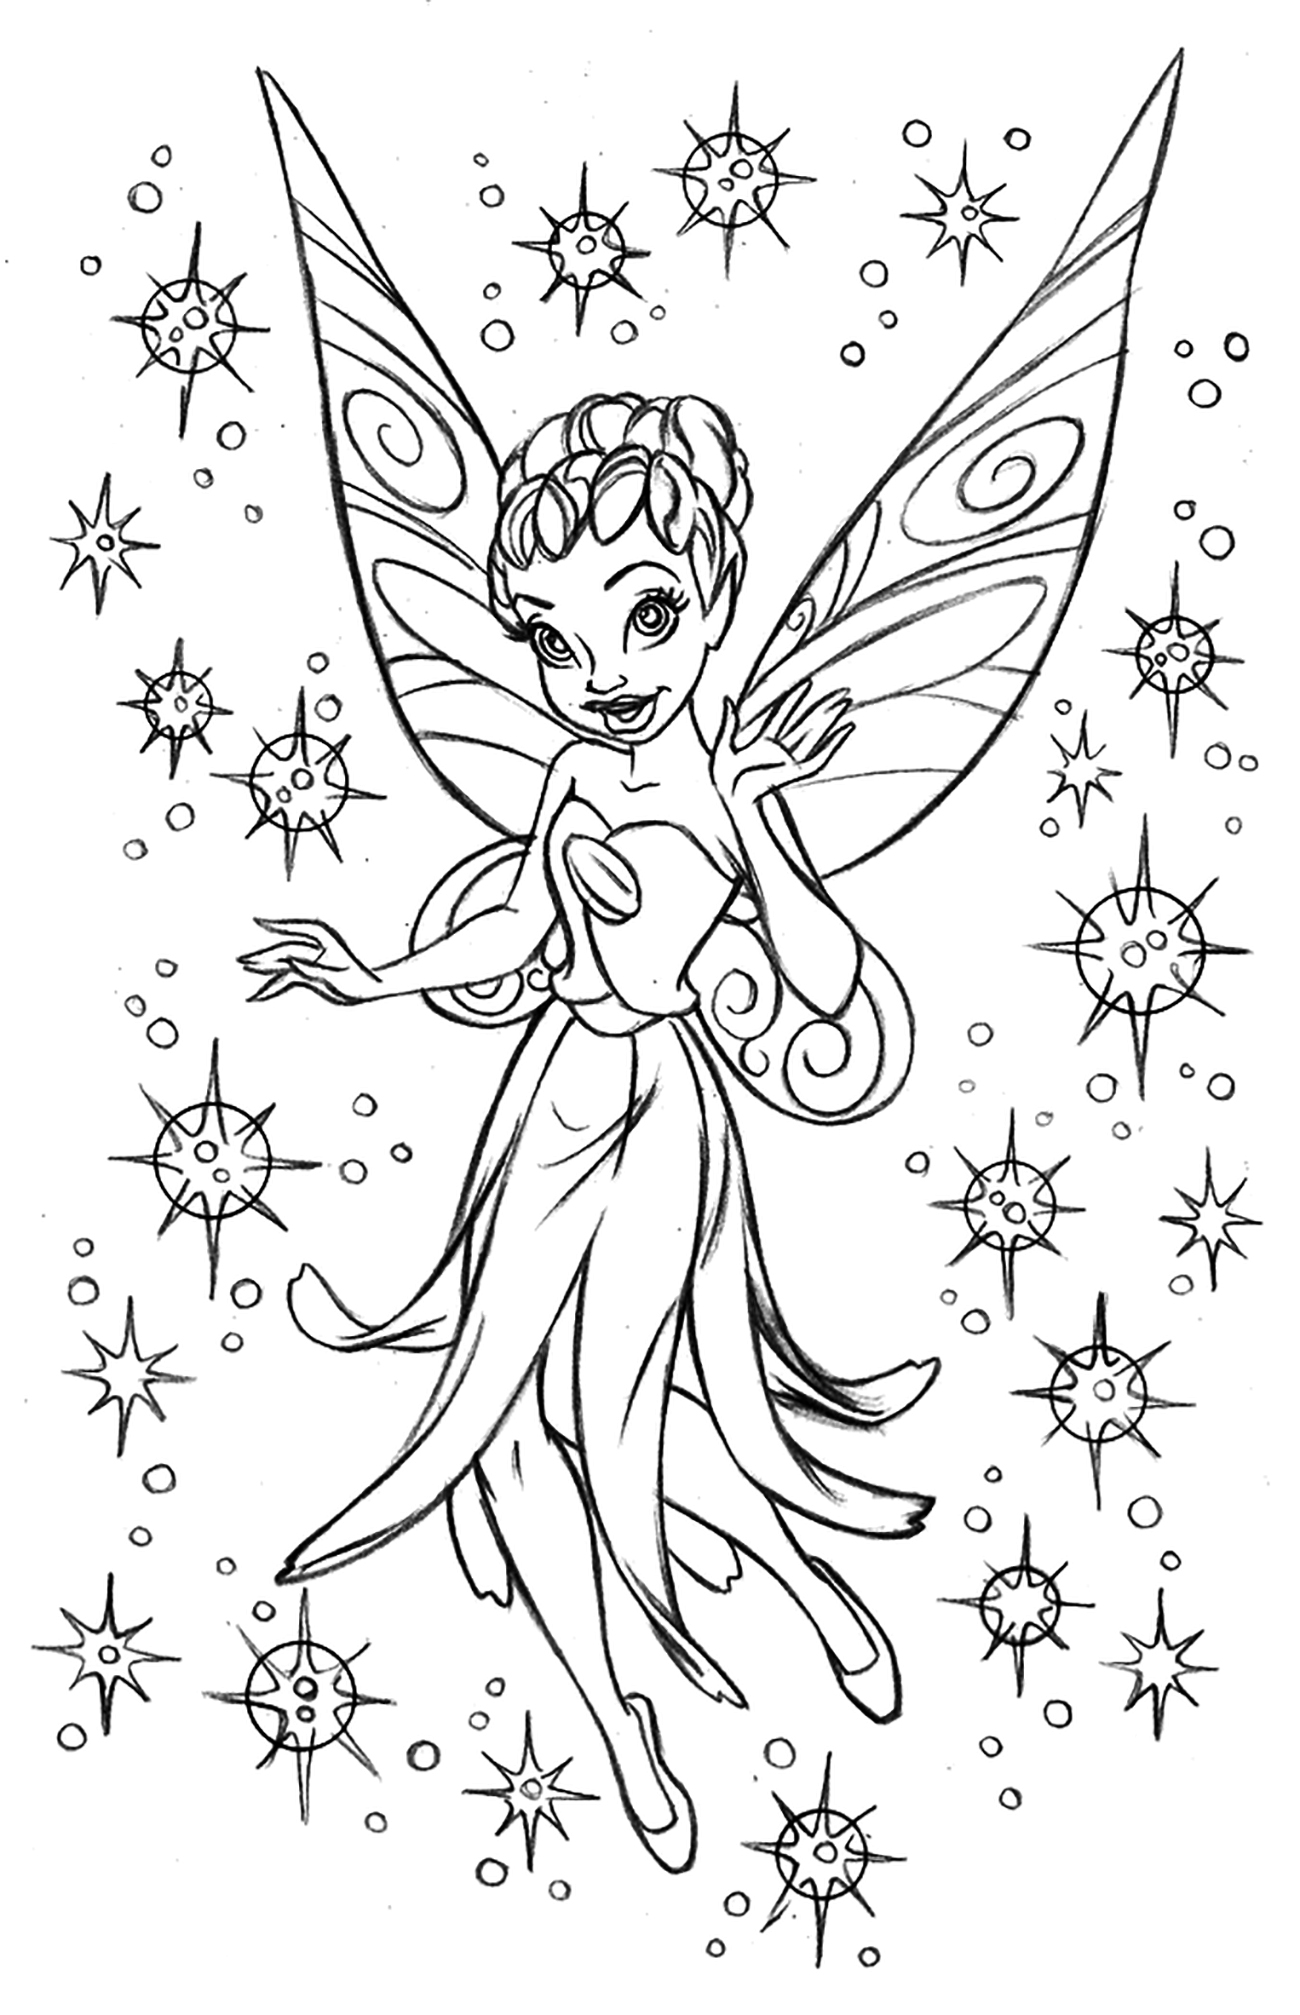 Fee clochette fan art dessin mythes et l gendes - Fee coloriage ...